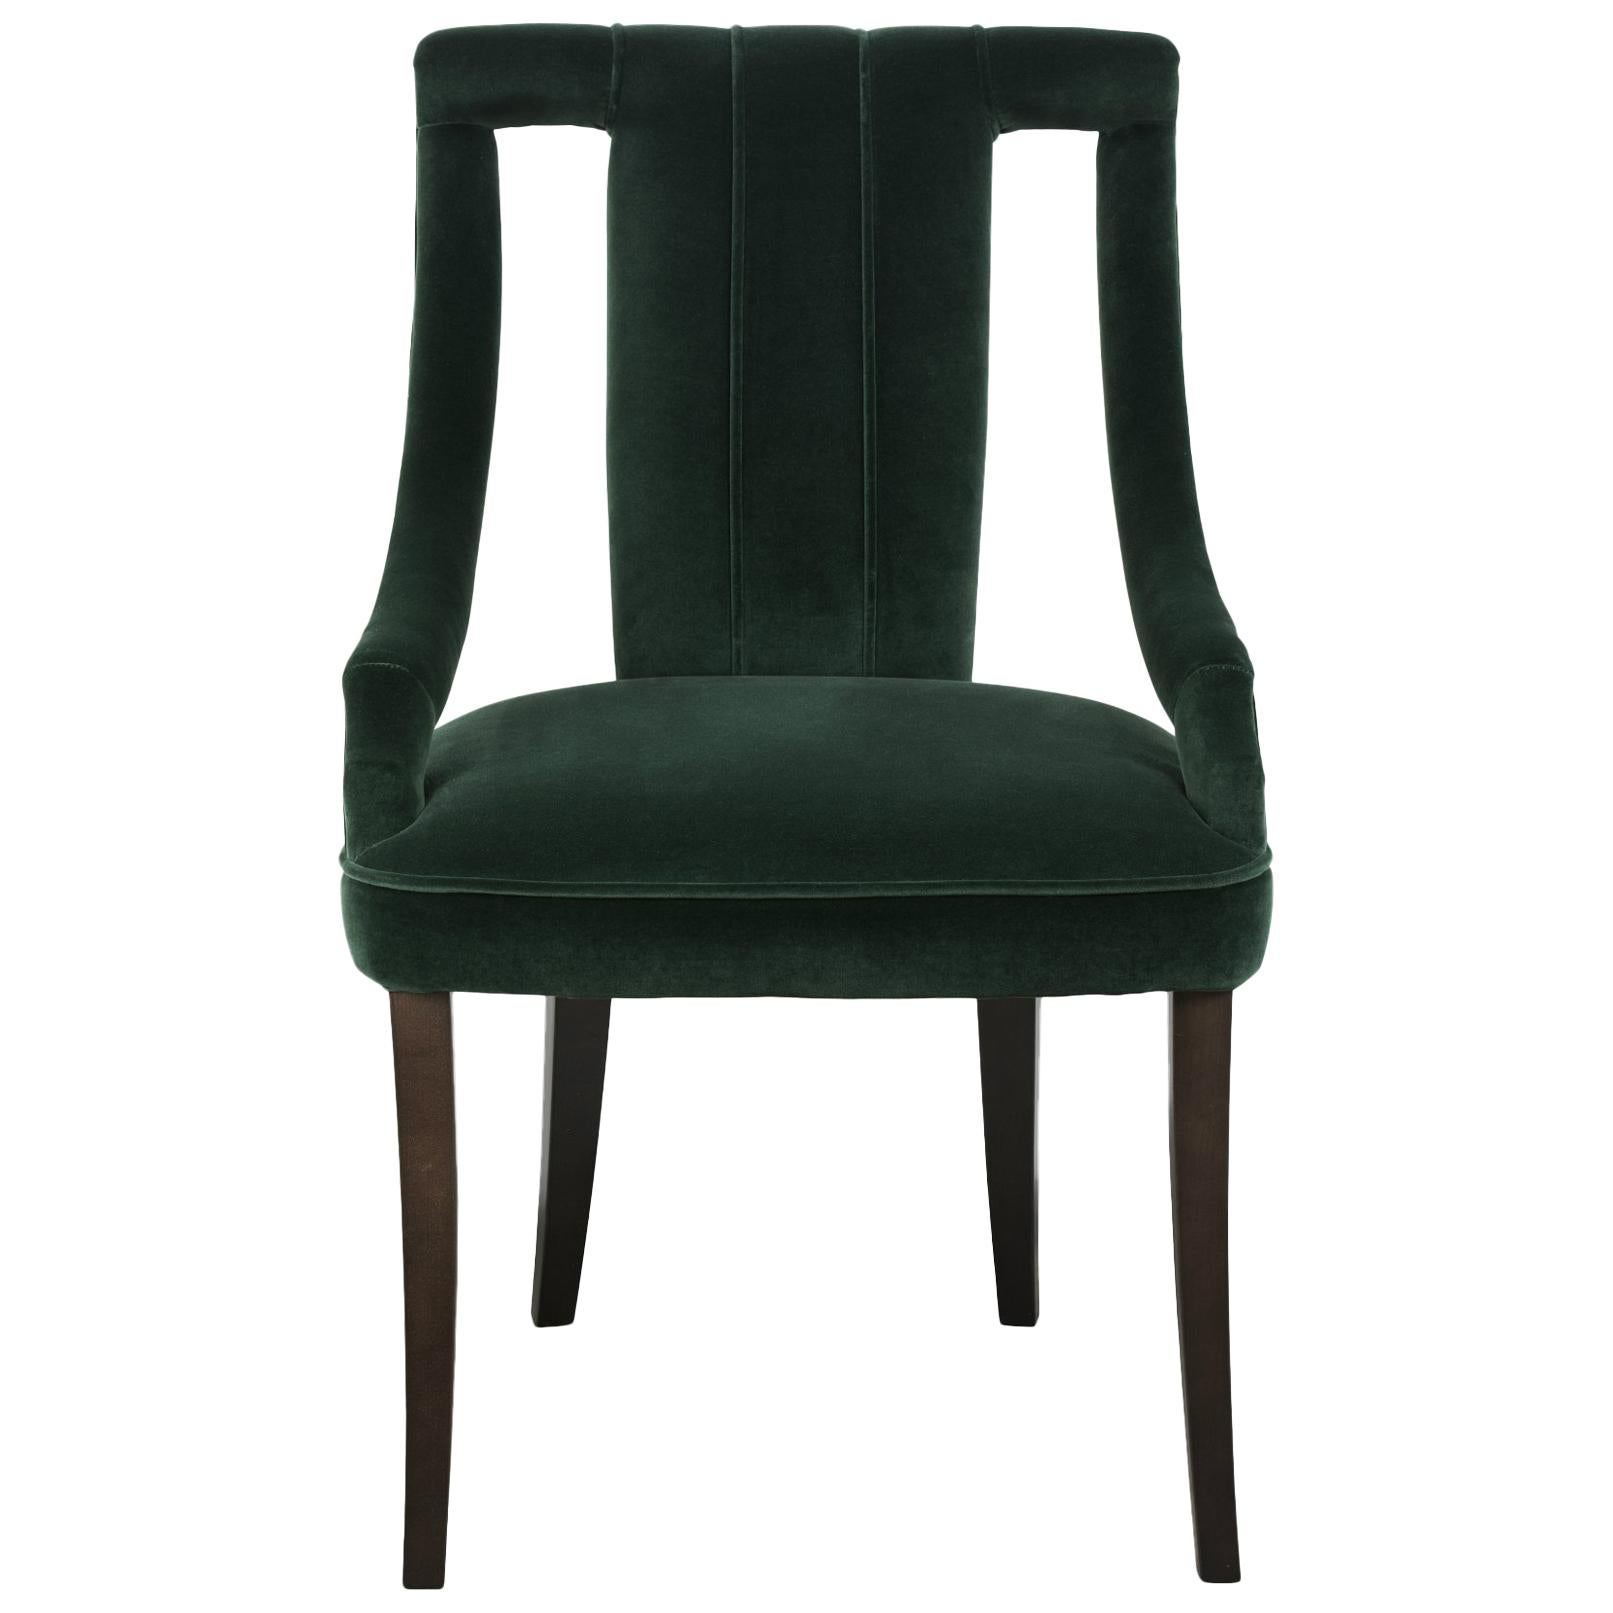 Cayo Dining Chair In Green Cotton Velvet With Wood Legs For Sale